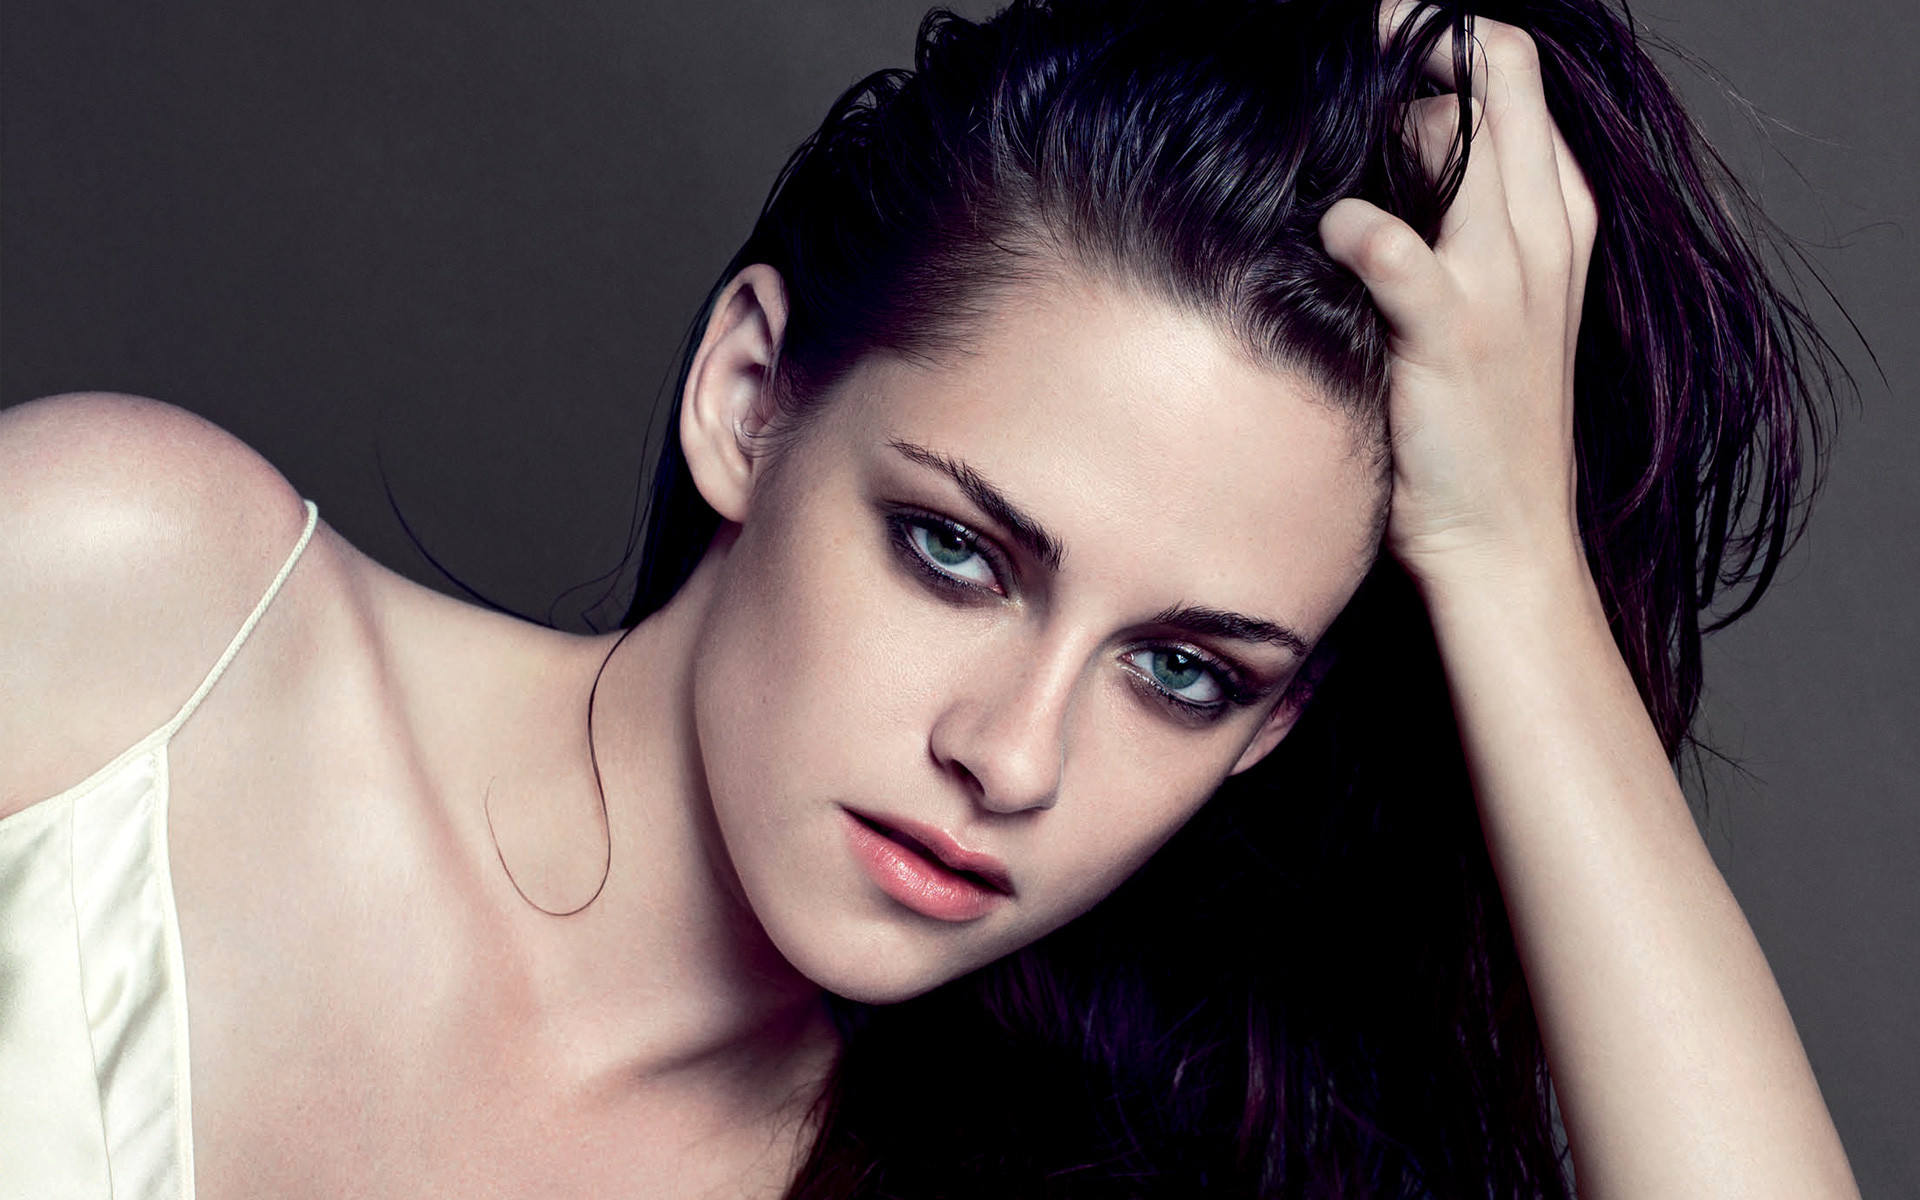 kristen stewart hd wallpapers 1920x1200 (78+ images)